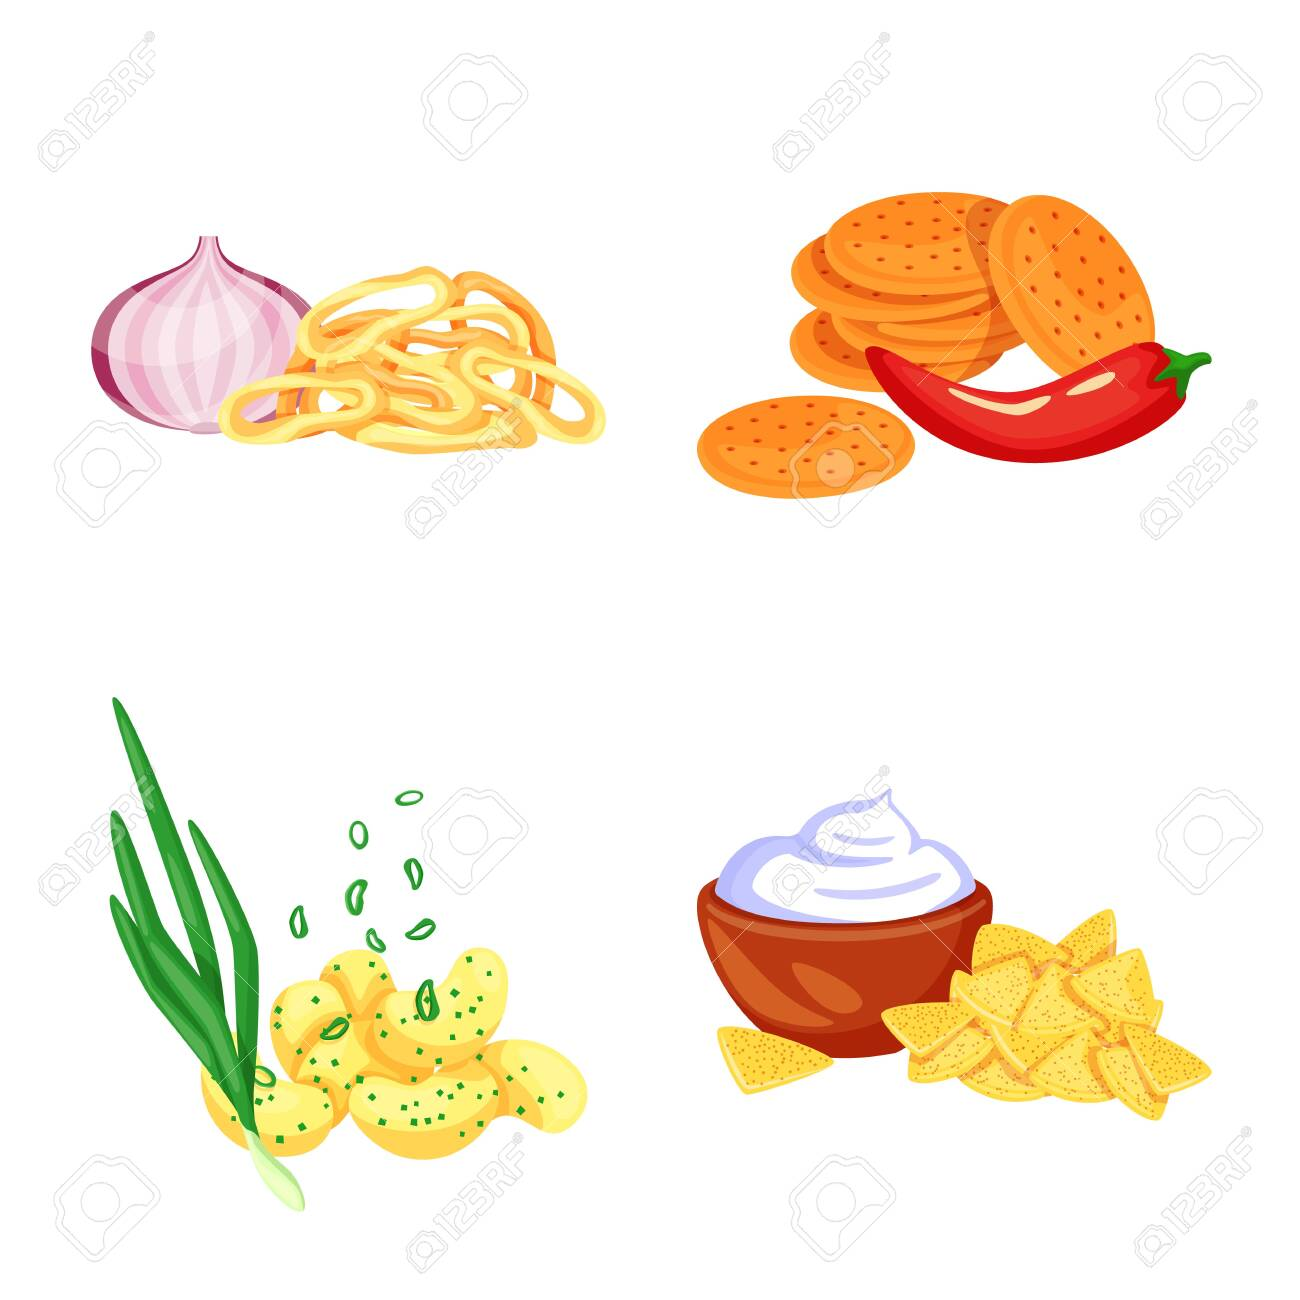 Vector illustration of food and product sign. Collection of food and party stock symbol for web. - 143496082